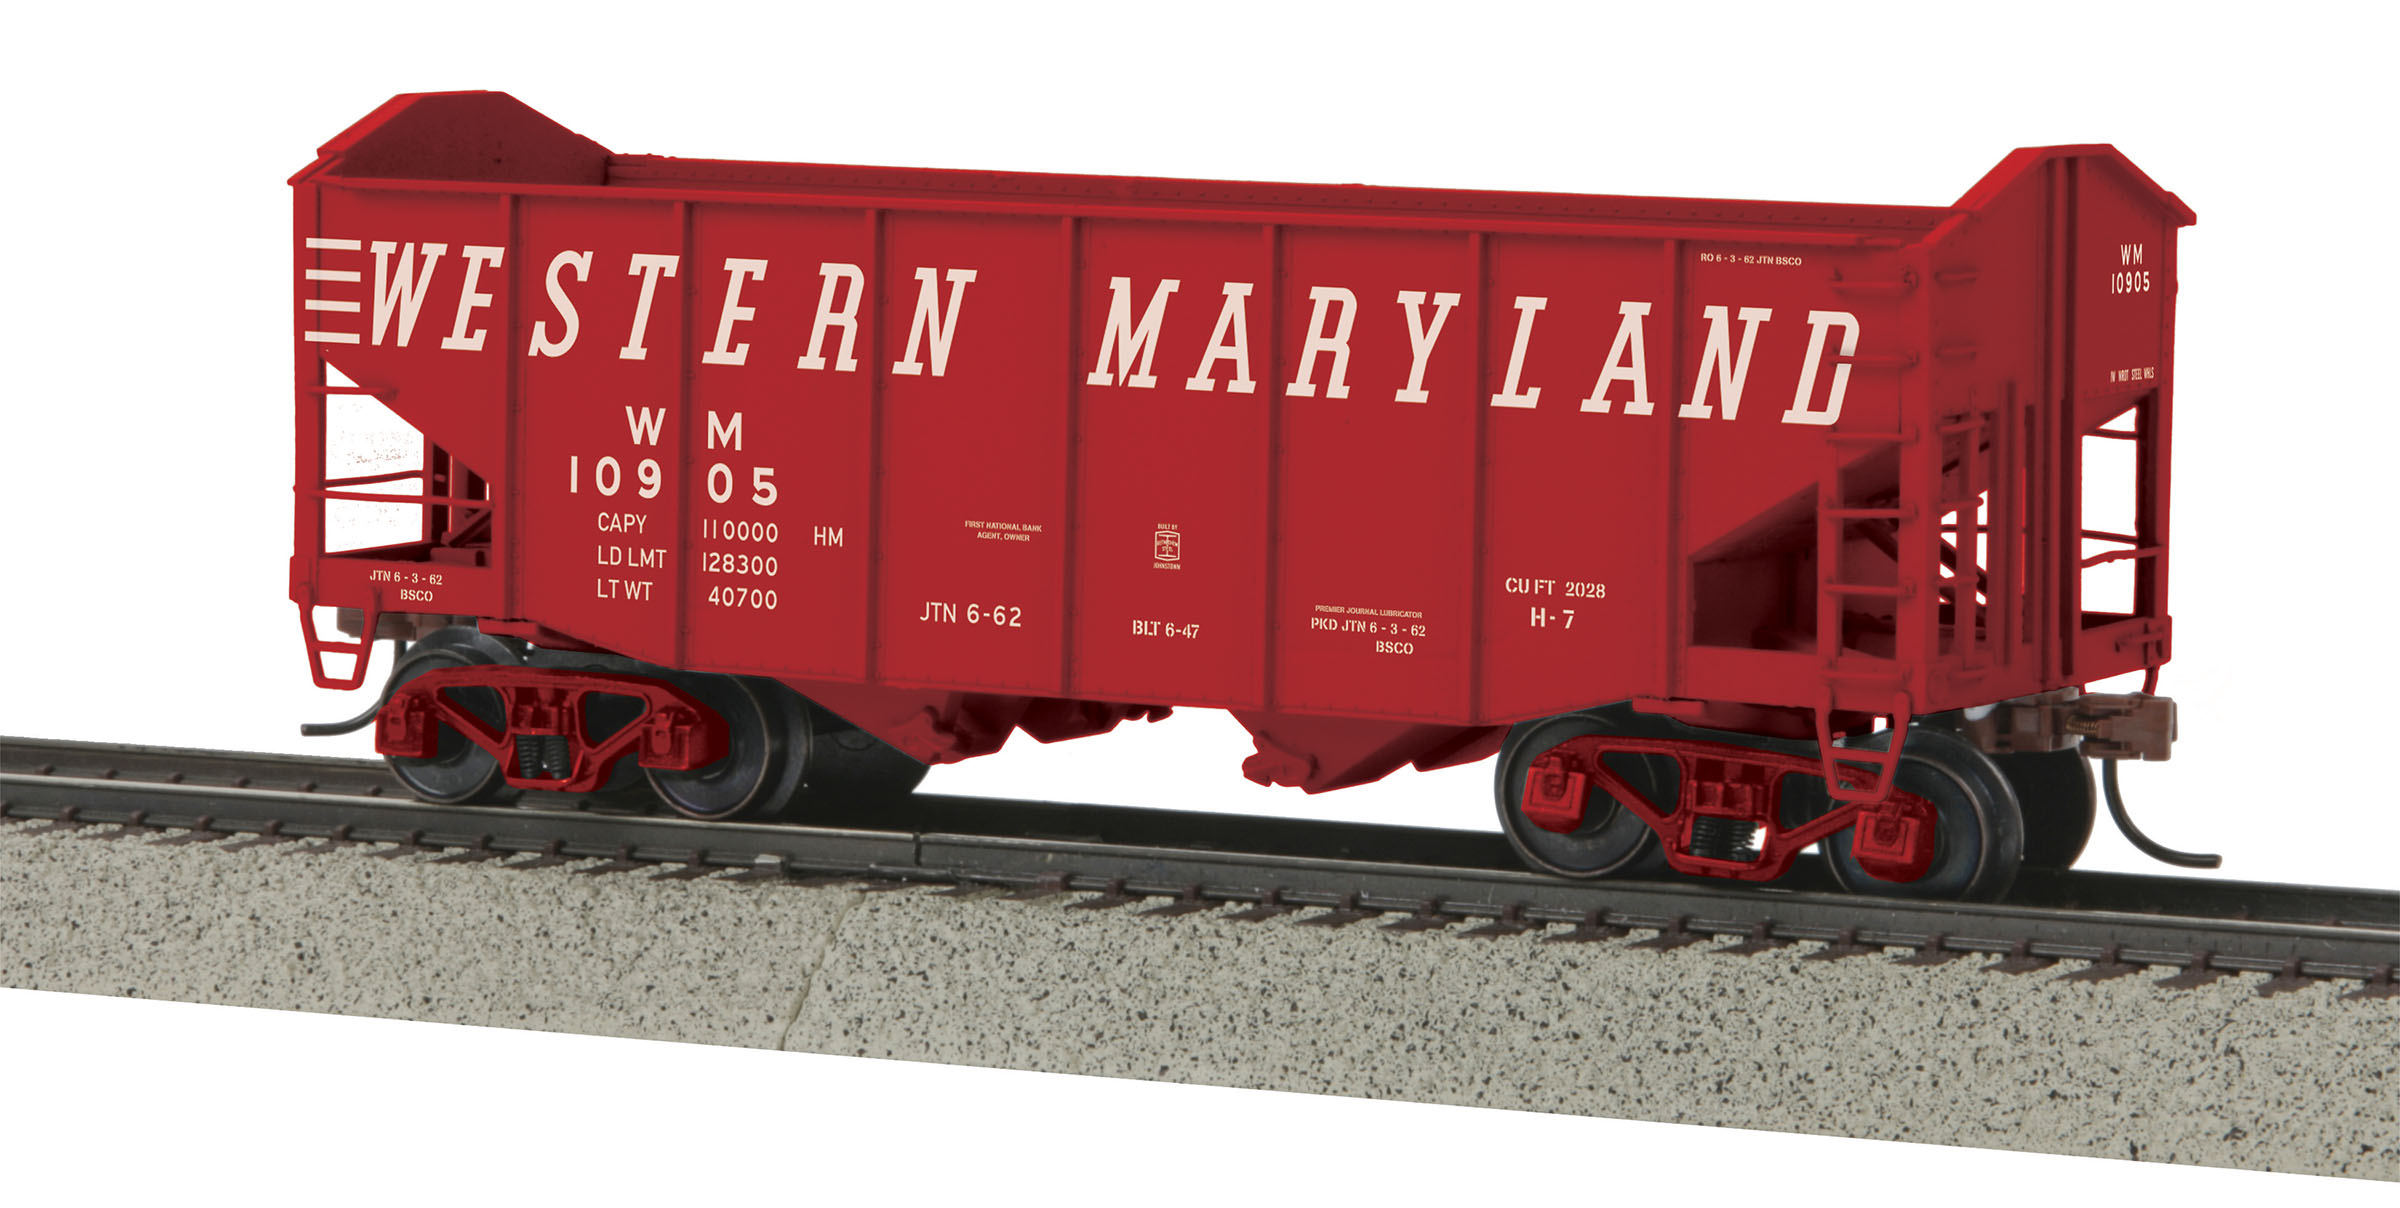 MTH 3575068 2Bay Fish Belly Hopper Car Hi-Rail Wheel WM #10905